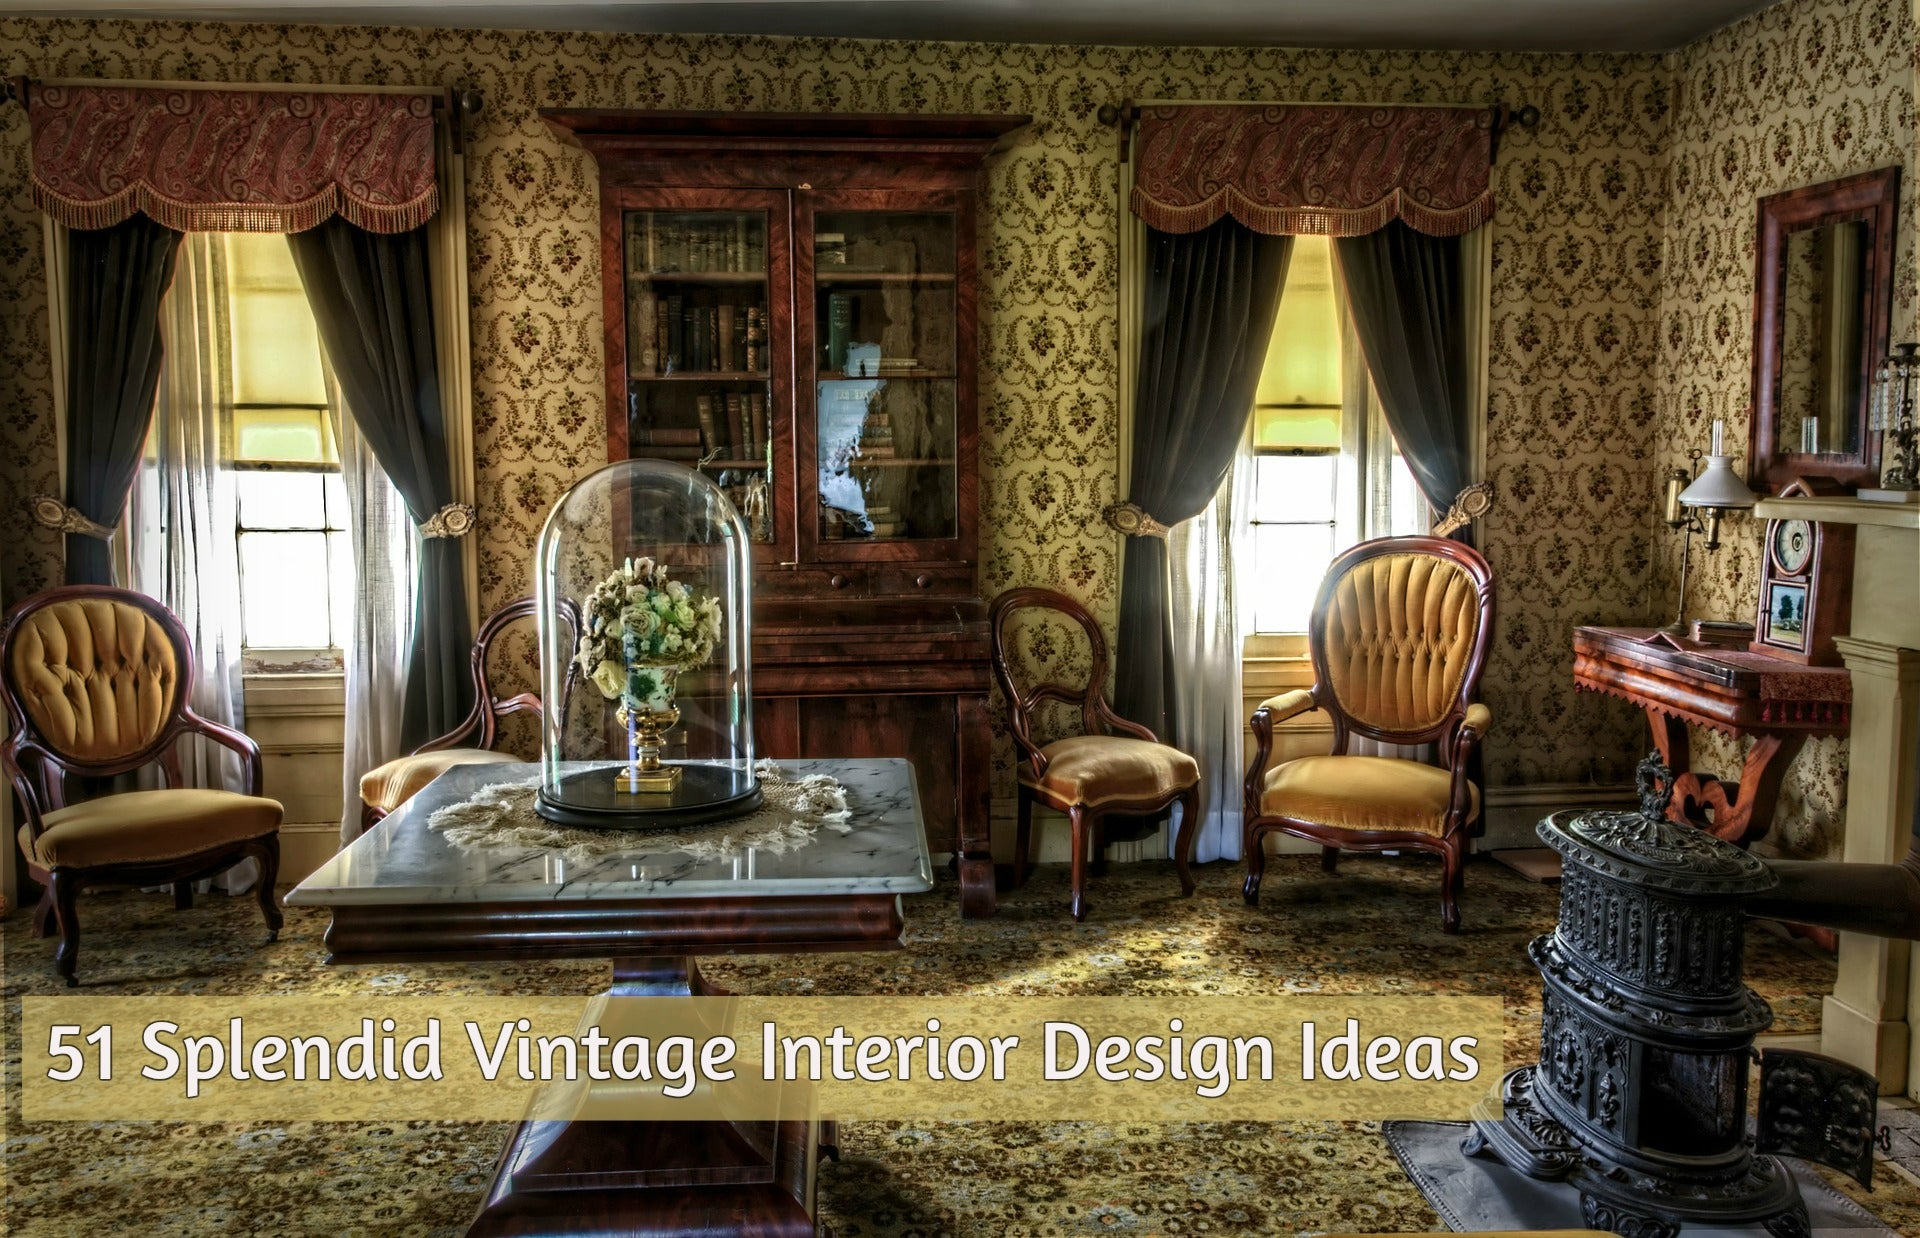 51 Worthy Vintage Interior Design Ideas To Convert Your Home | The ...